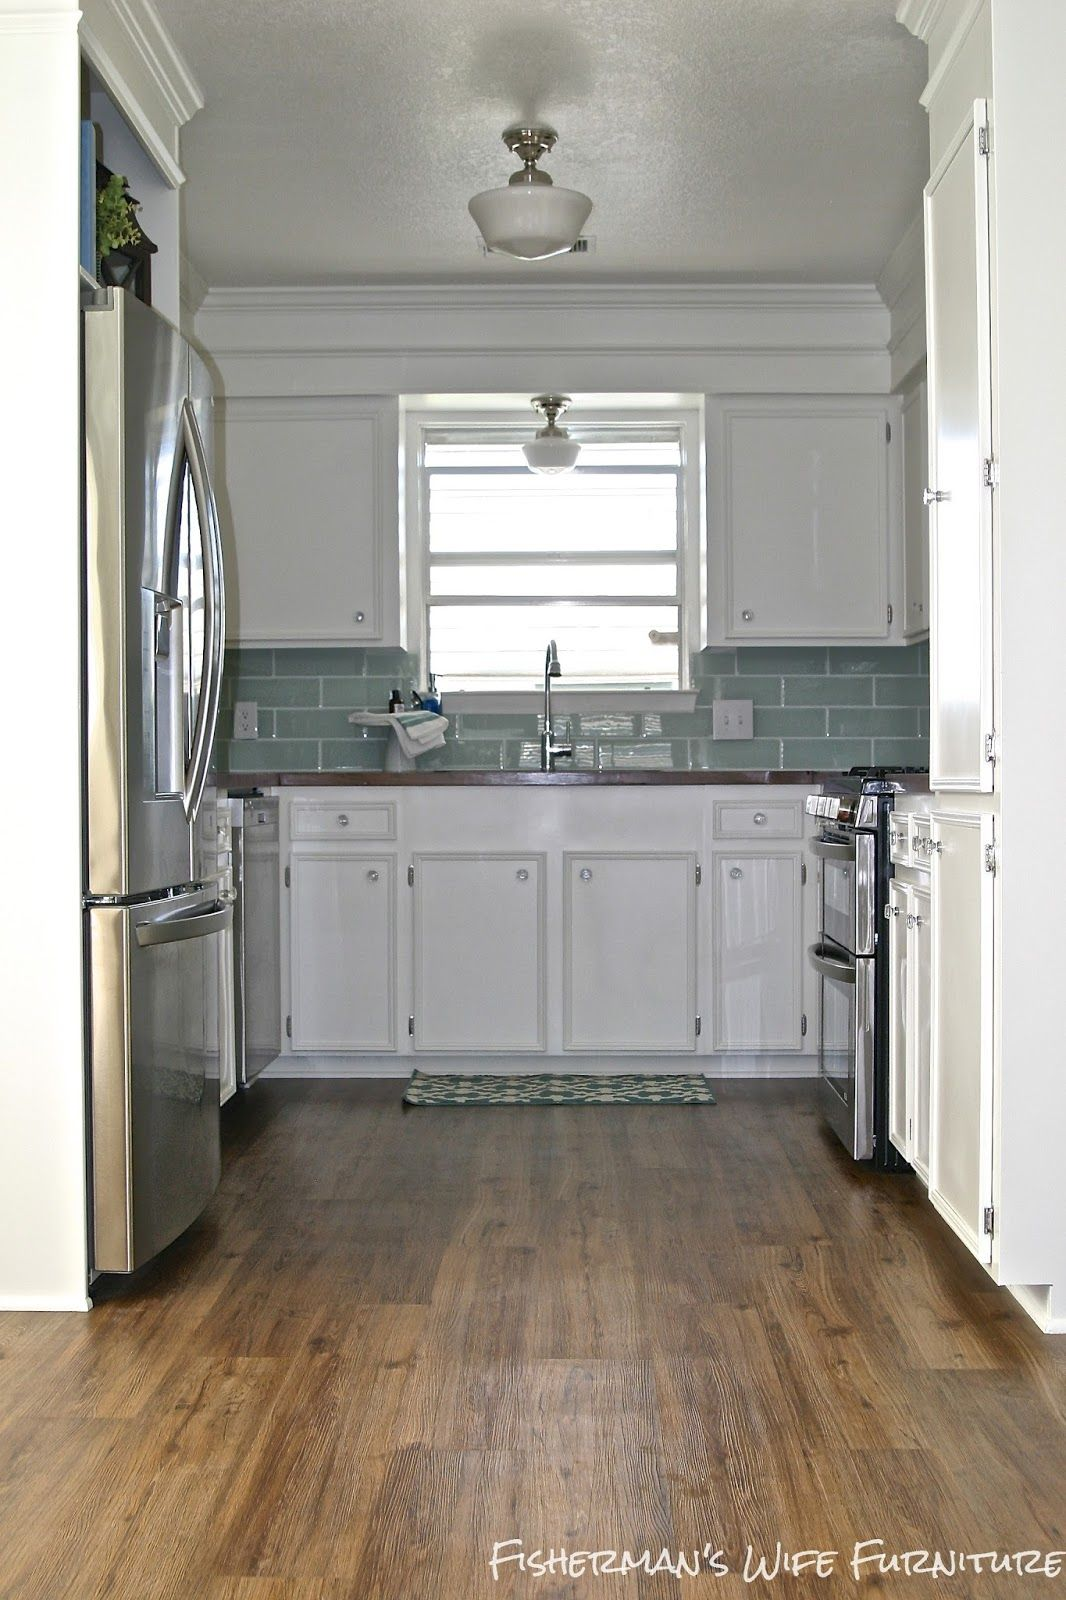 Small White Kitchens small white kitchen makeover with built-in fridge enclosure